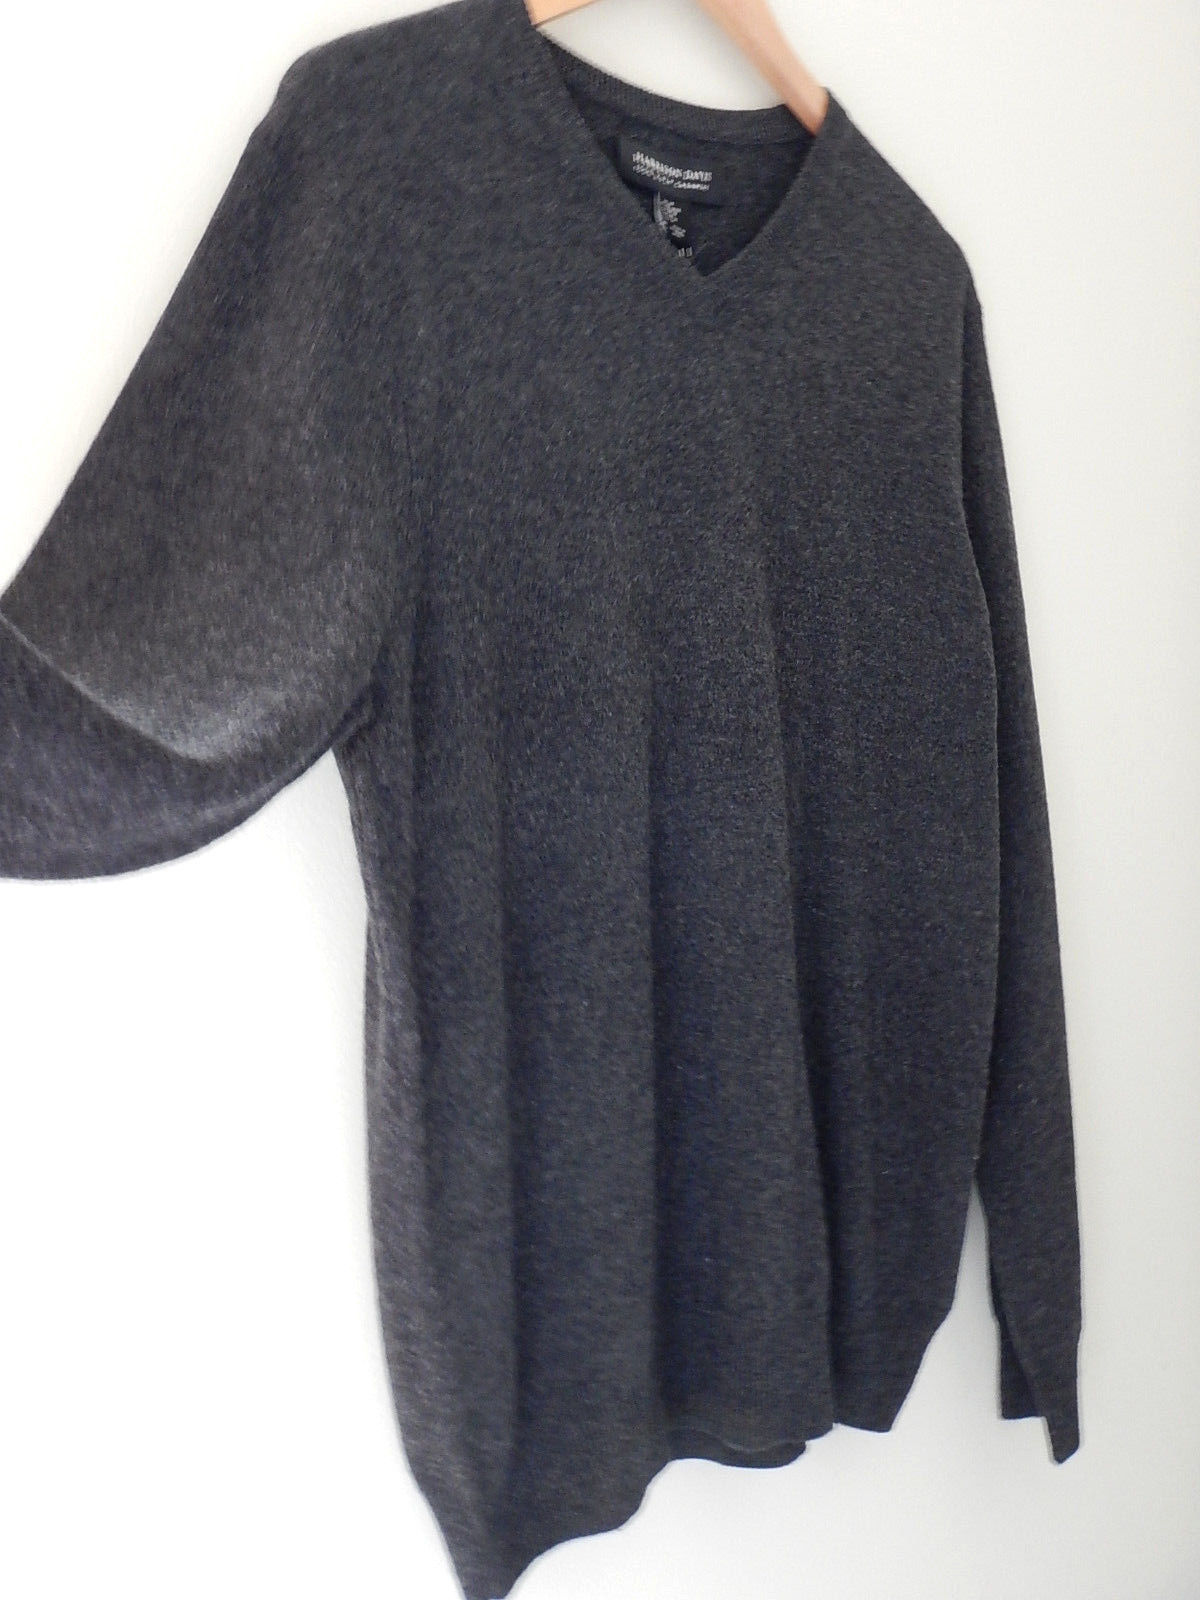 NWT Harrison Davis 100% Cashmere Men's Gray V Neck Sweater M $245